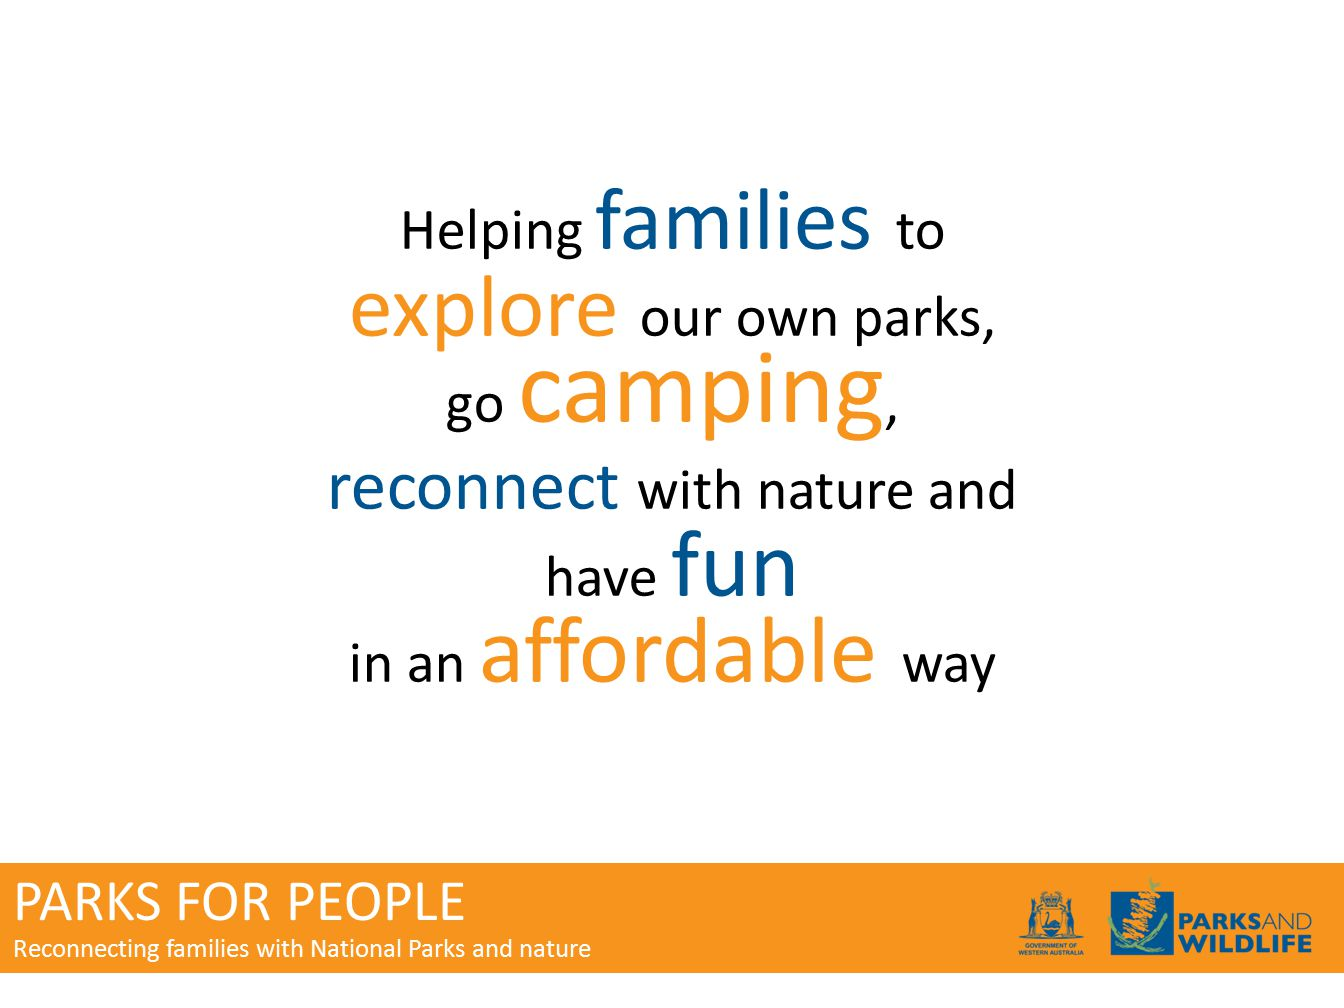 PARKS FOR PEOPLE Reconnecting families with National Parks and nature Helping families to explore our own parks, go camping, reconnect with nature and